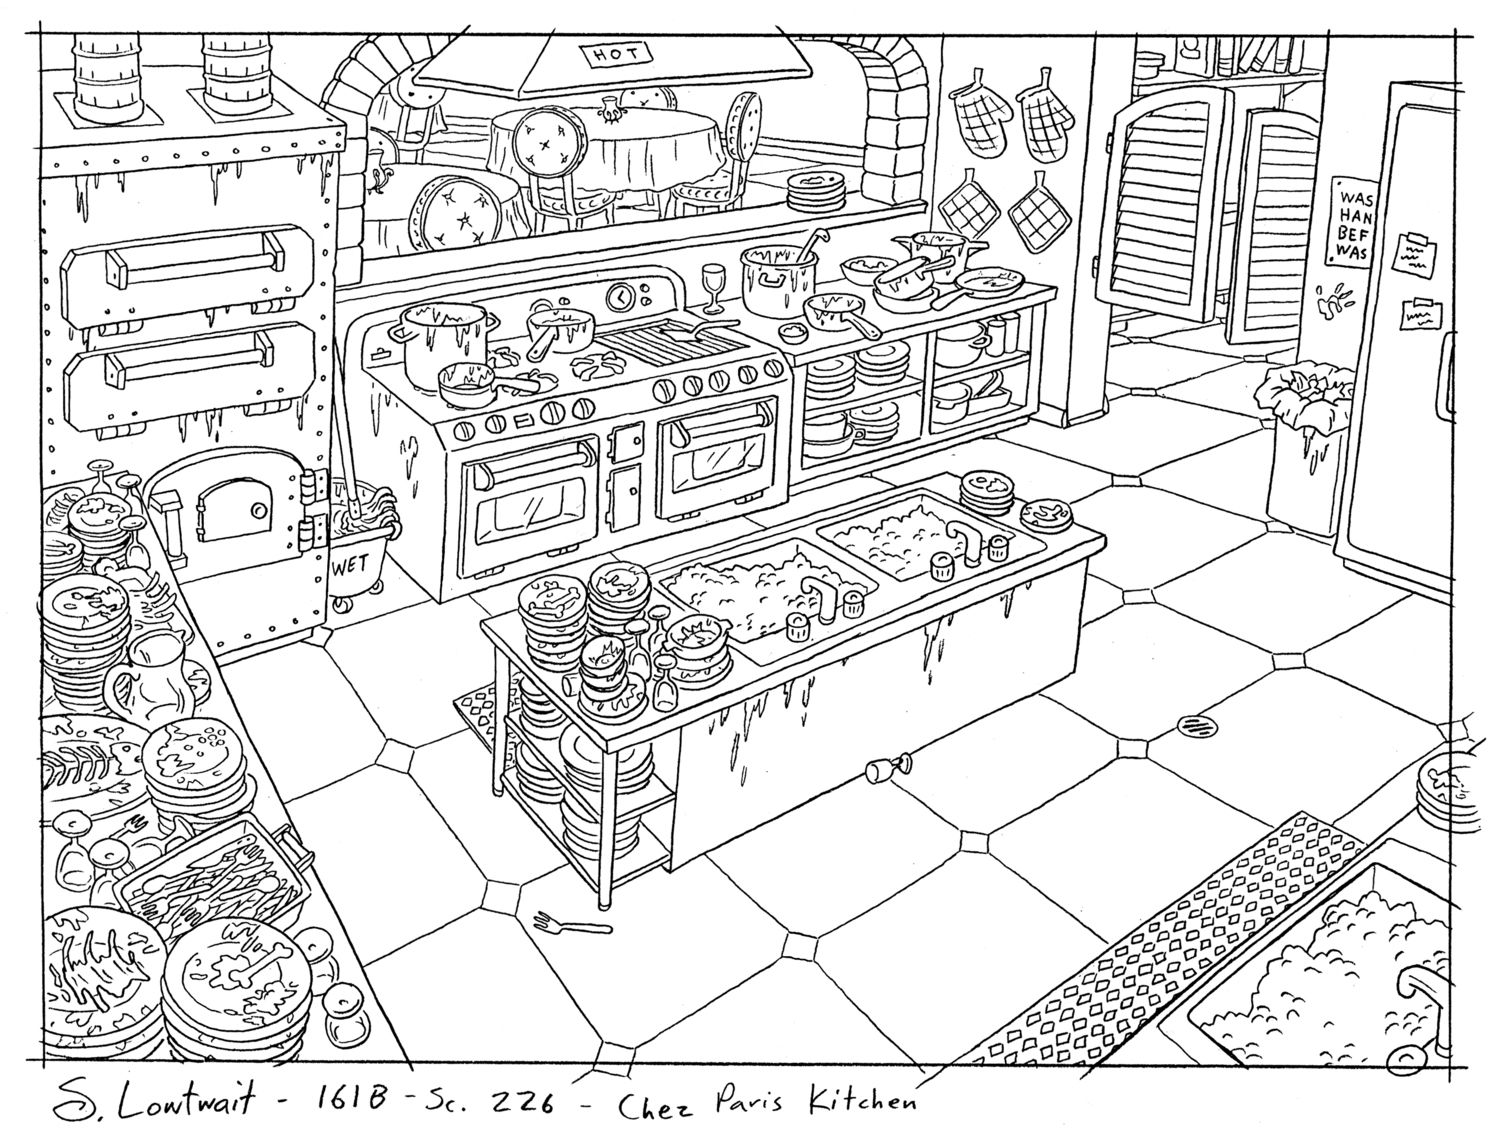 This Is The Kitchen Of The Restaurant From The Valentine S Day